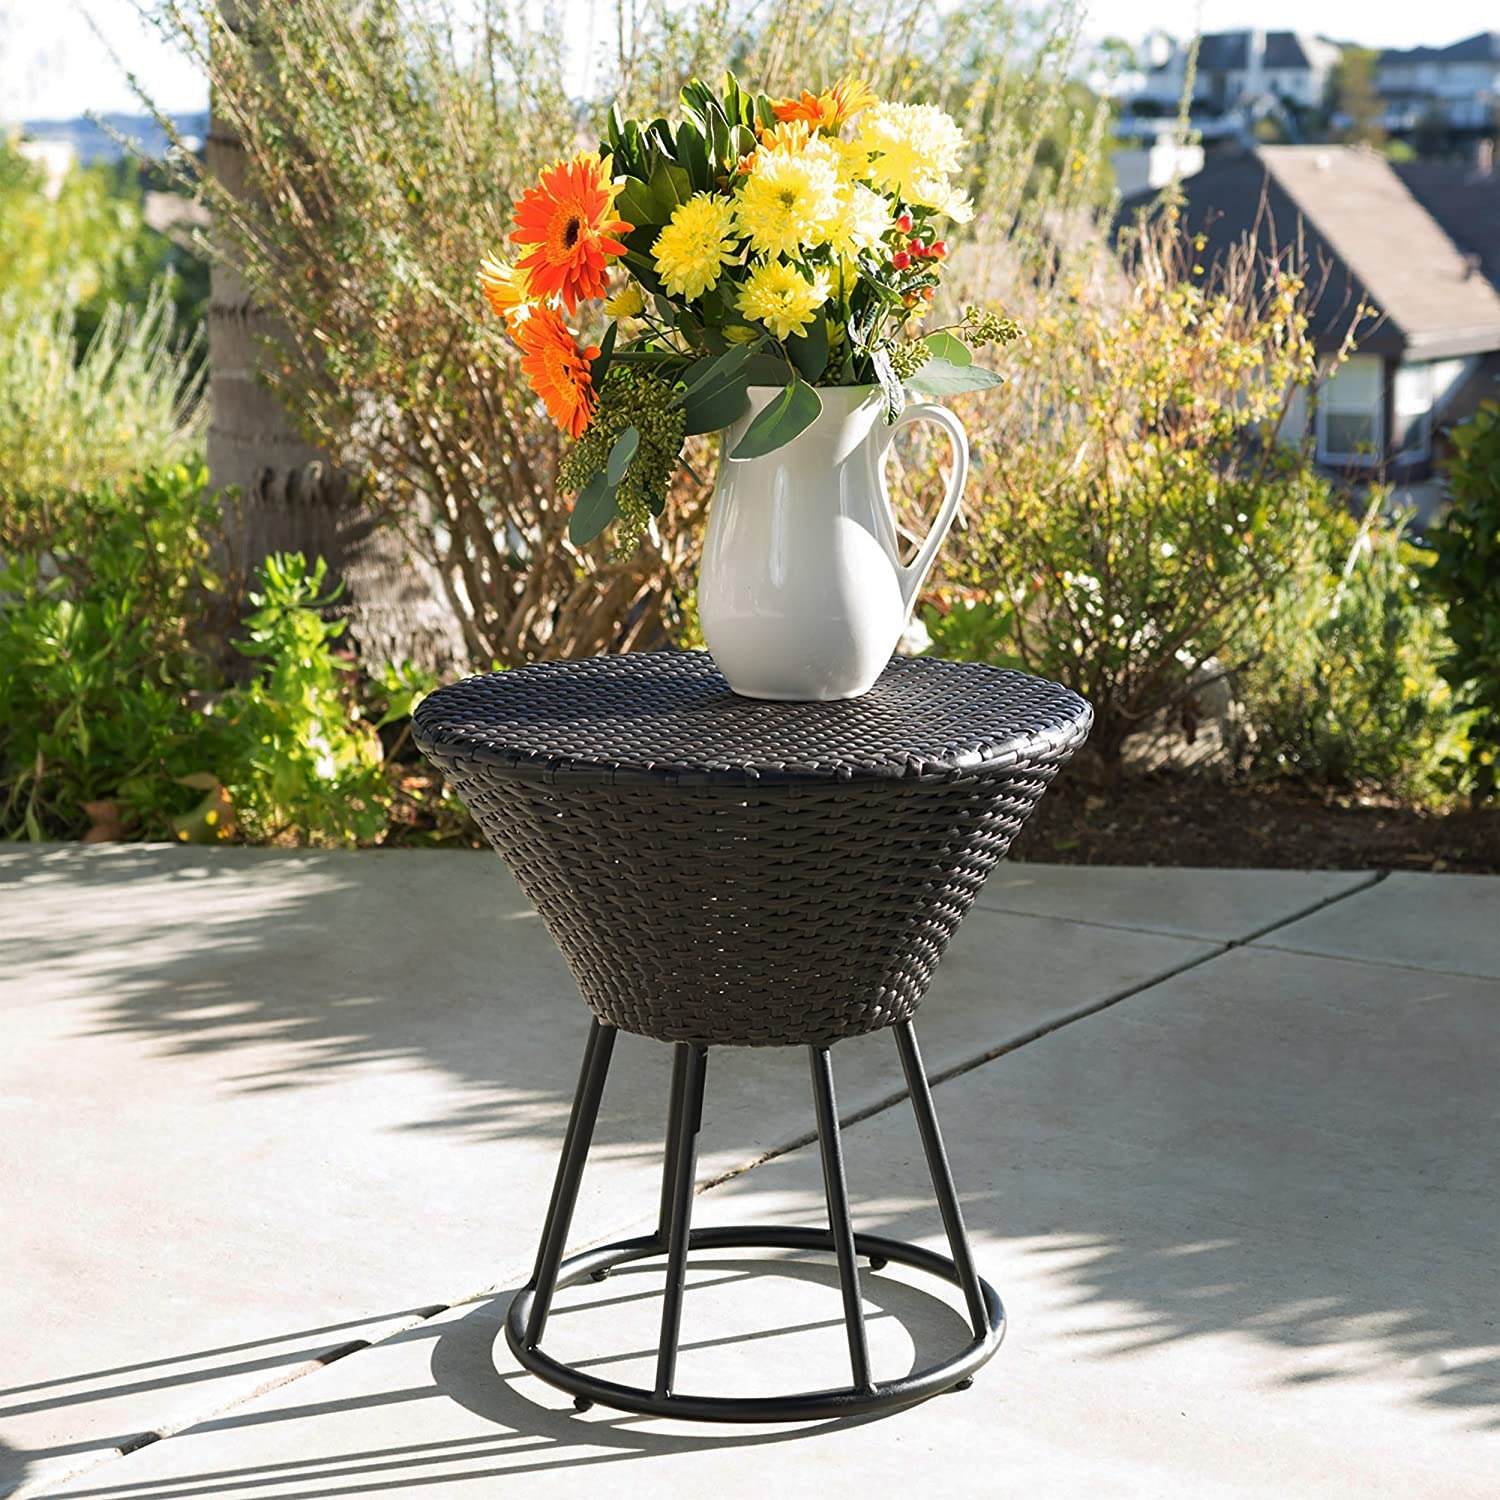 Christopher Knight Home Crete Wicker Outdoor Accent Table, Multibrown